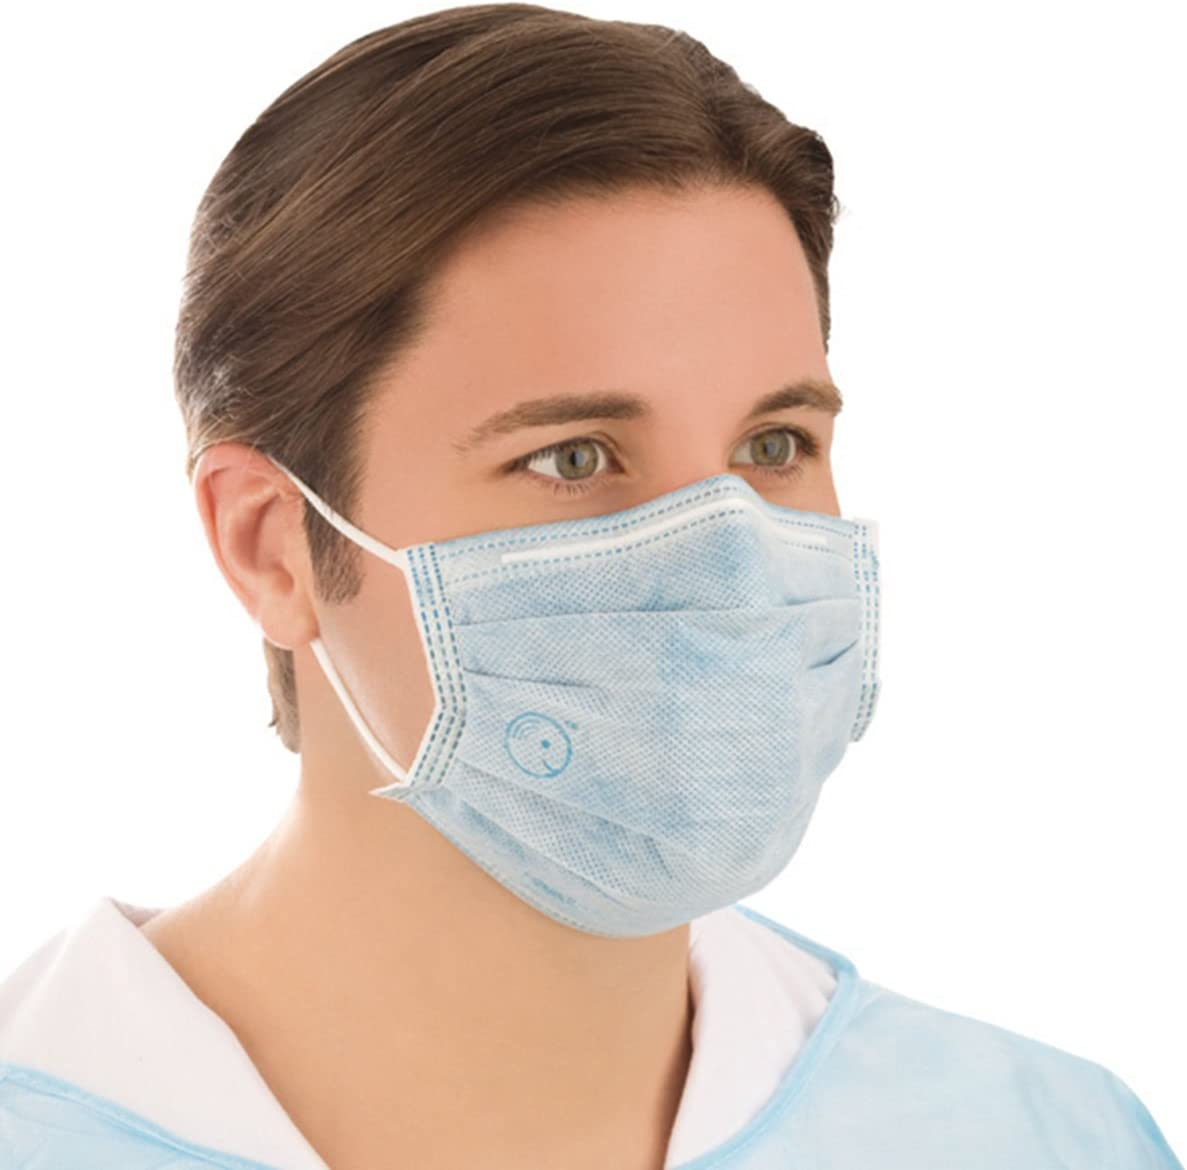 Antiviral Per Curad Mask With com Amazon 24 Isolation Earloops